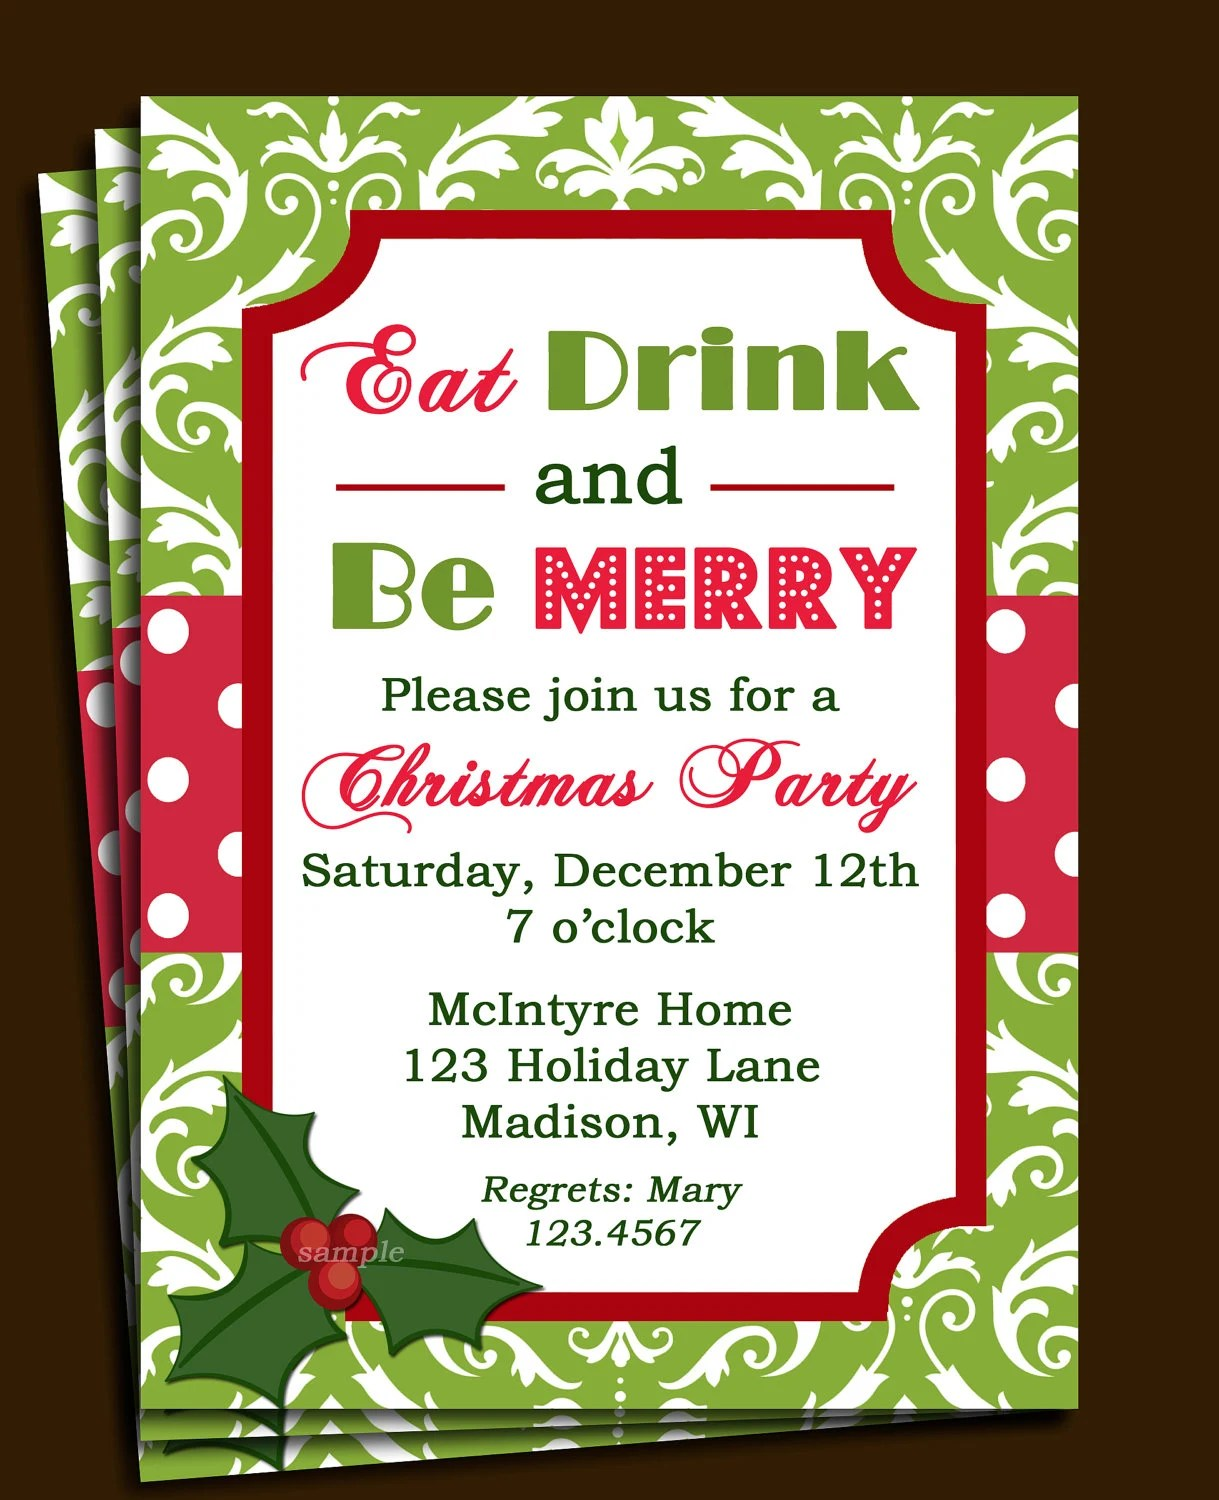 Corporate Christmas Party Invitation Templates – Company Christmas Party Invitations